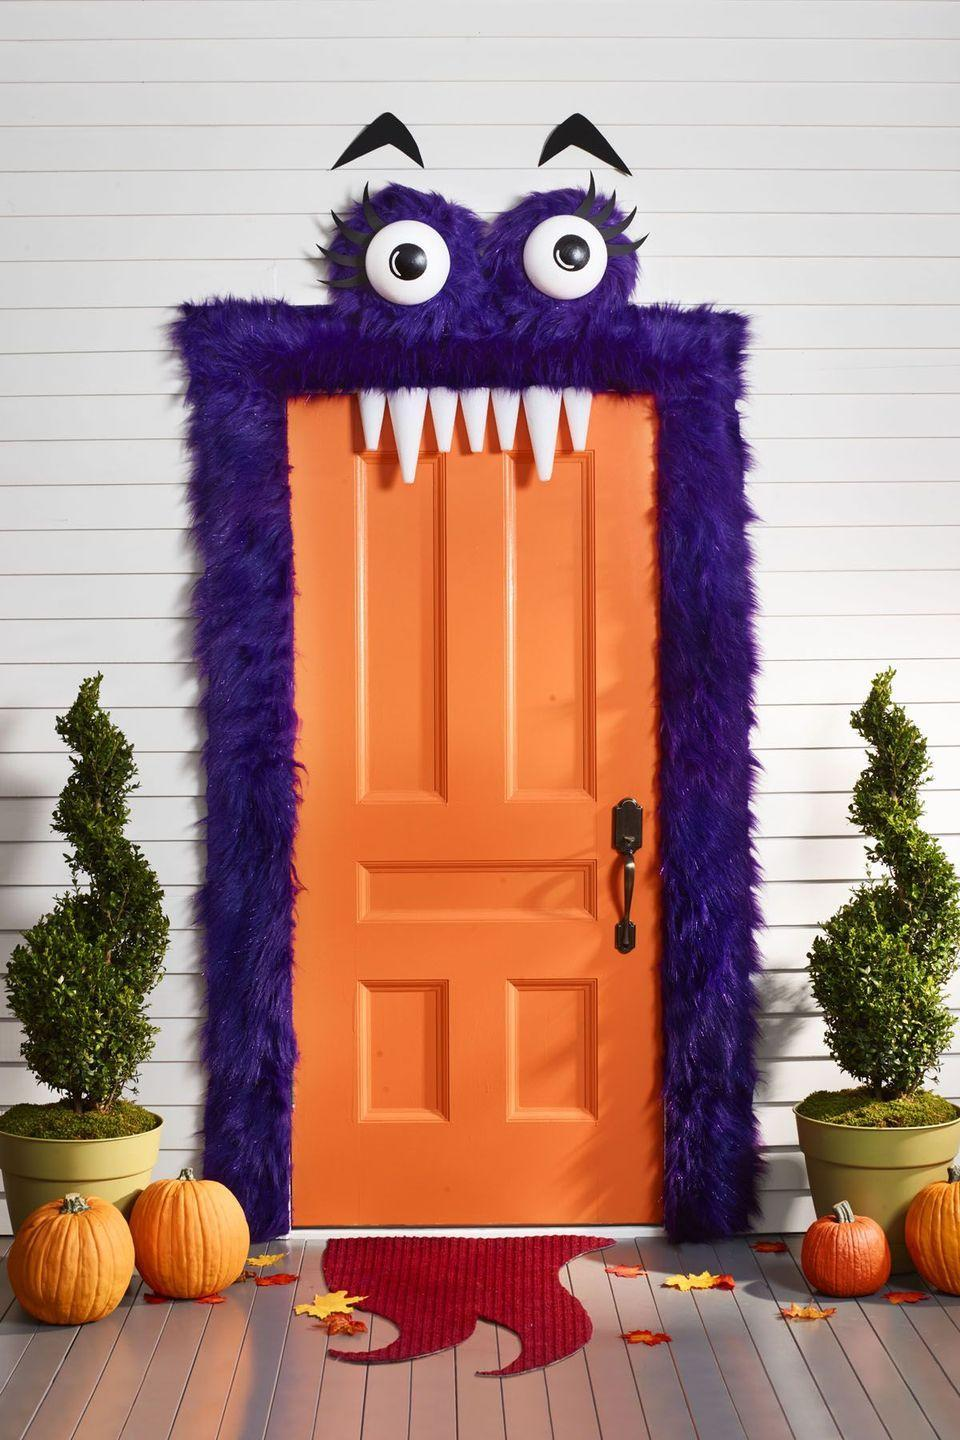 """<p>This adorable purple monster is the perfect way to welcome trick-or-treaters this Halloween.</p><p>1. To make eyes, paint black circles on two 8"""" foam half balls; let dry. Paint white highlight. Cut black foam eyelashes and eyebrows.</p><p>2. From 3 yards faux purple fur, cut two 16"""" squares and hot-glue each around a 12"""" foam wreath. Glue eyeballs in center and eyelashes across top. Add a horizontal string across back of each eye for hanging.</p><p>3. Frame door with strips of fur using tacks of hem tape. Use Command Hooks to hang eyes above. Tack or hem tape eyebrows in place.</p><p>4. For teeth, use foam cones, and then attach to top of door frame with hem tape.</p><p>5. Draw and cut tongue shape from floor mat. Spray-paint red; let dry.</p>"""